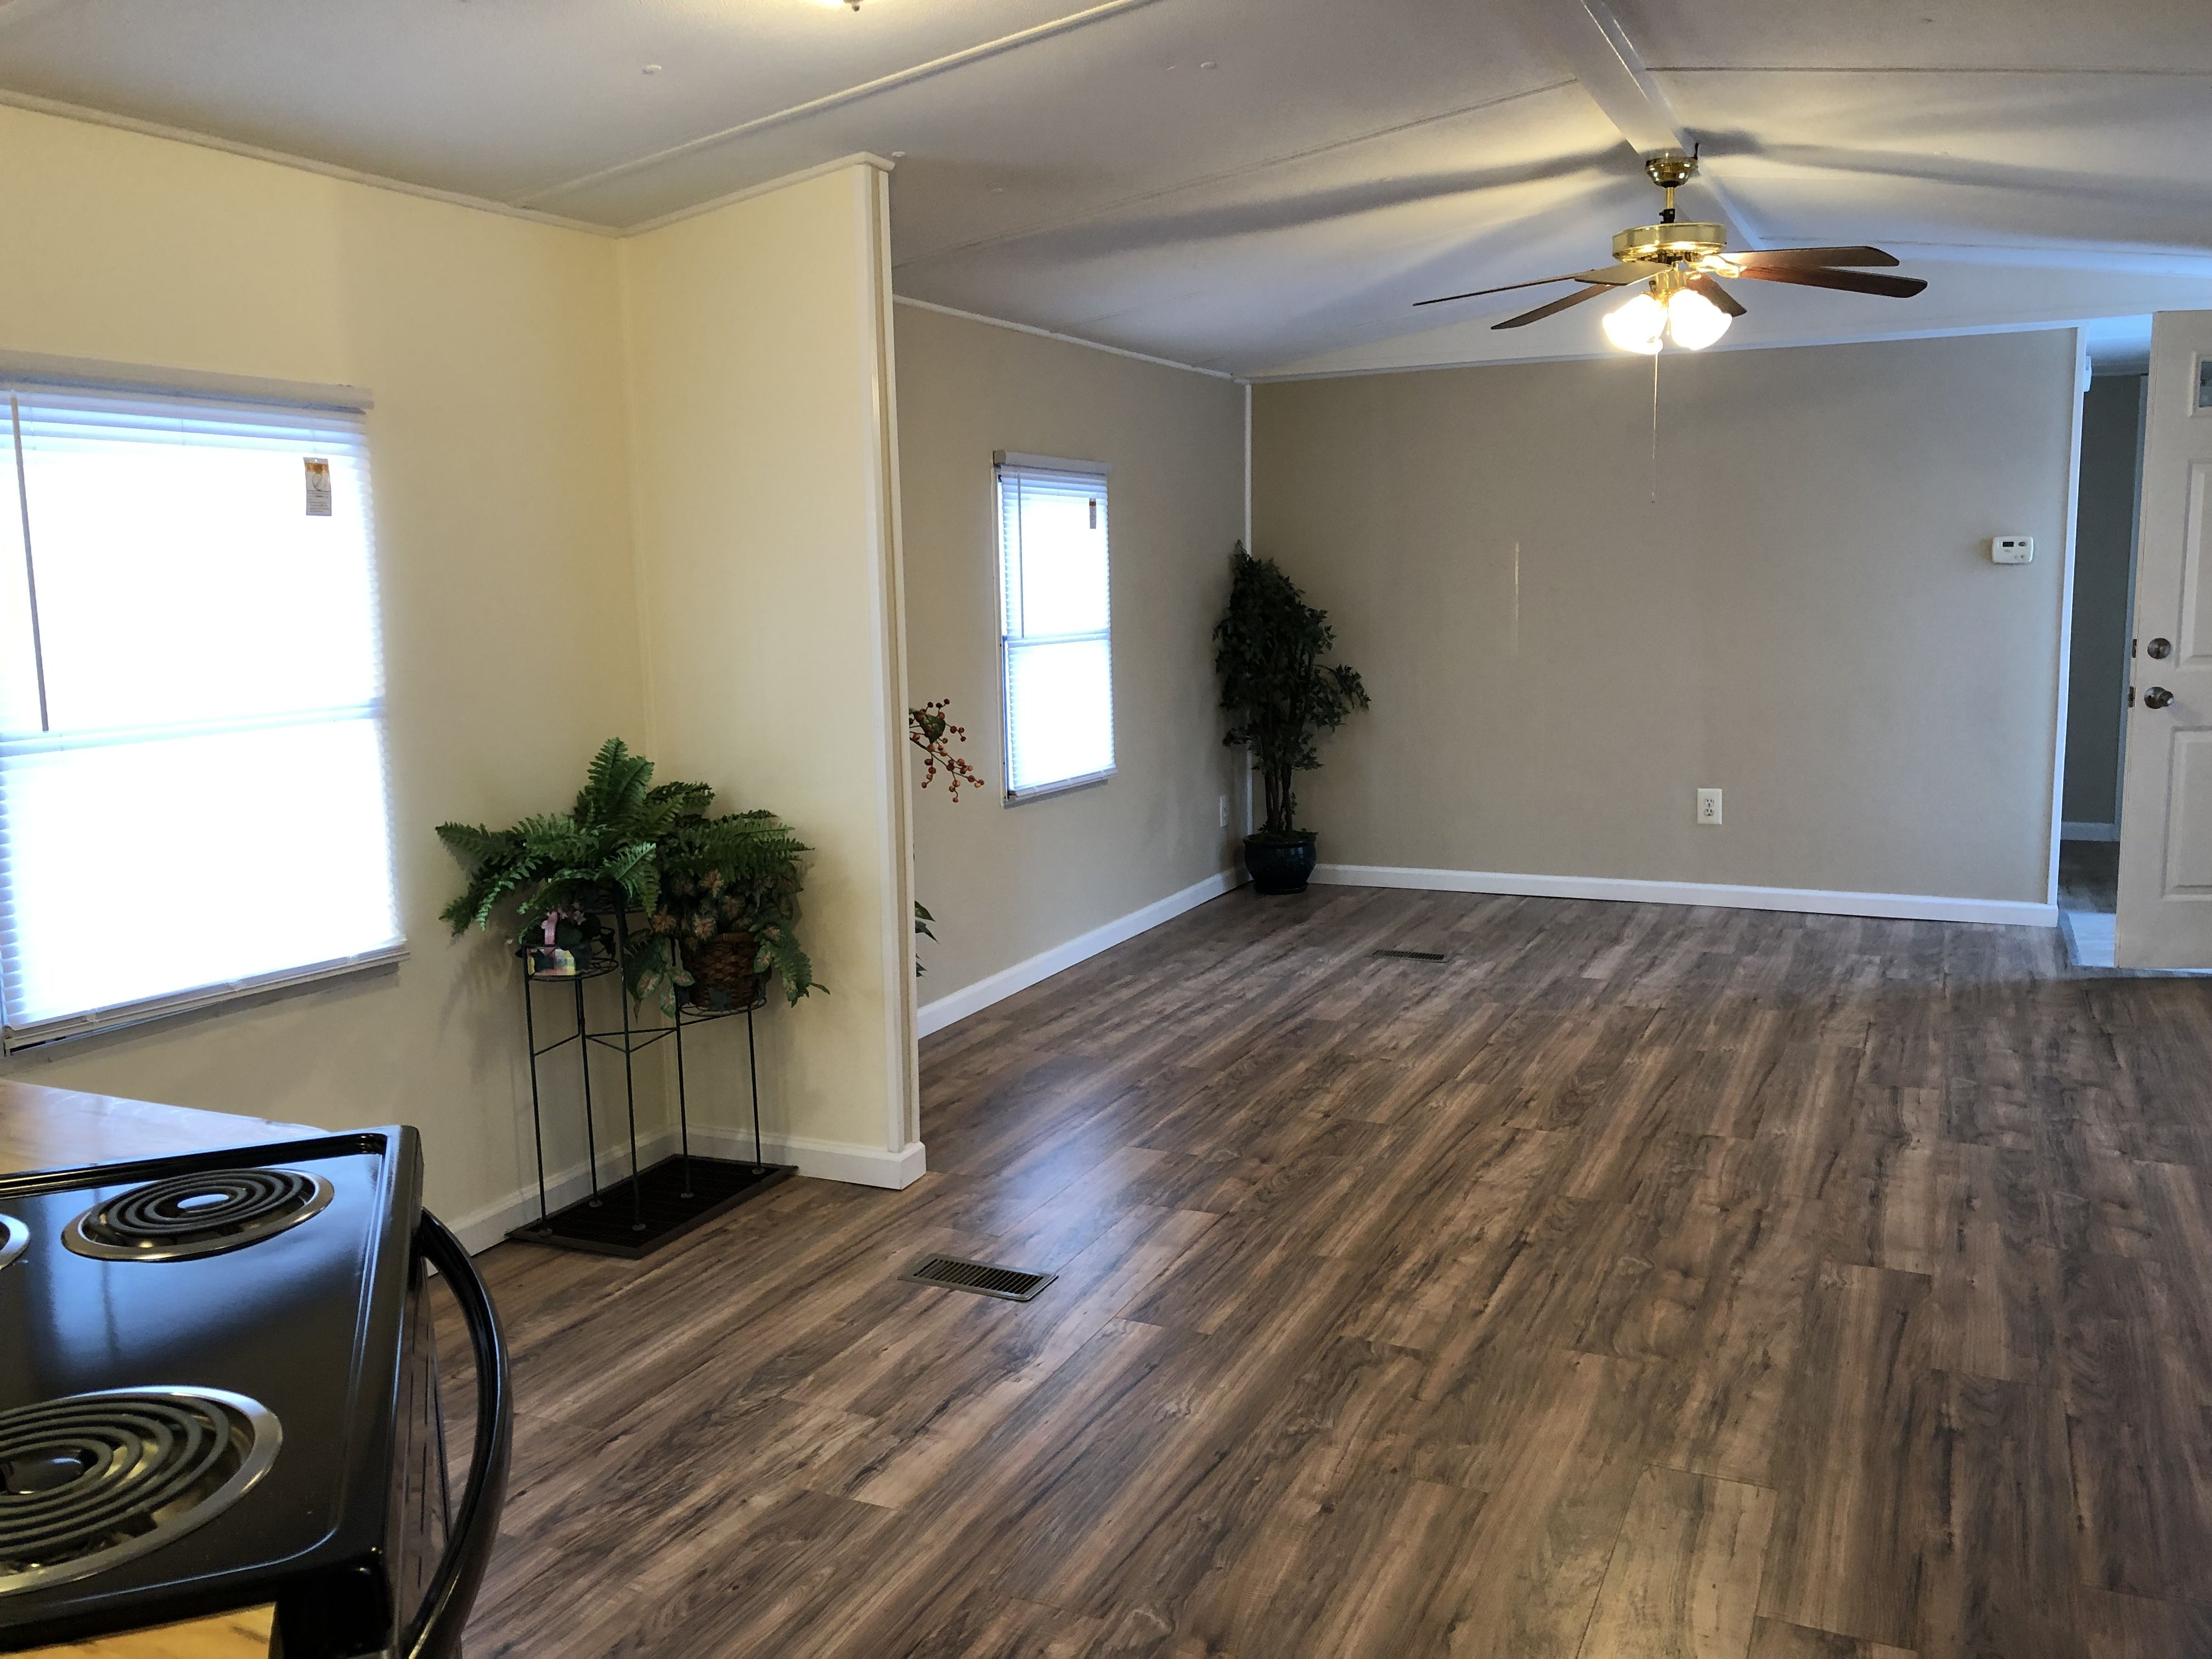 Pin by Paul's Mobile Homes on Mobile Homes Remodeling